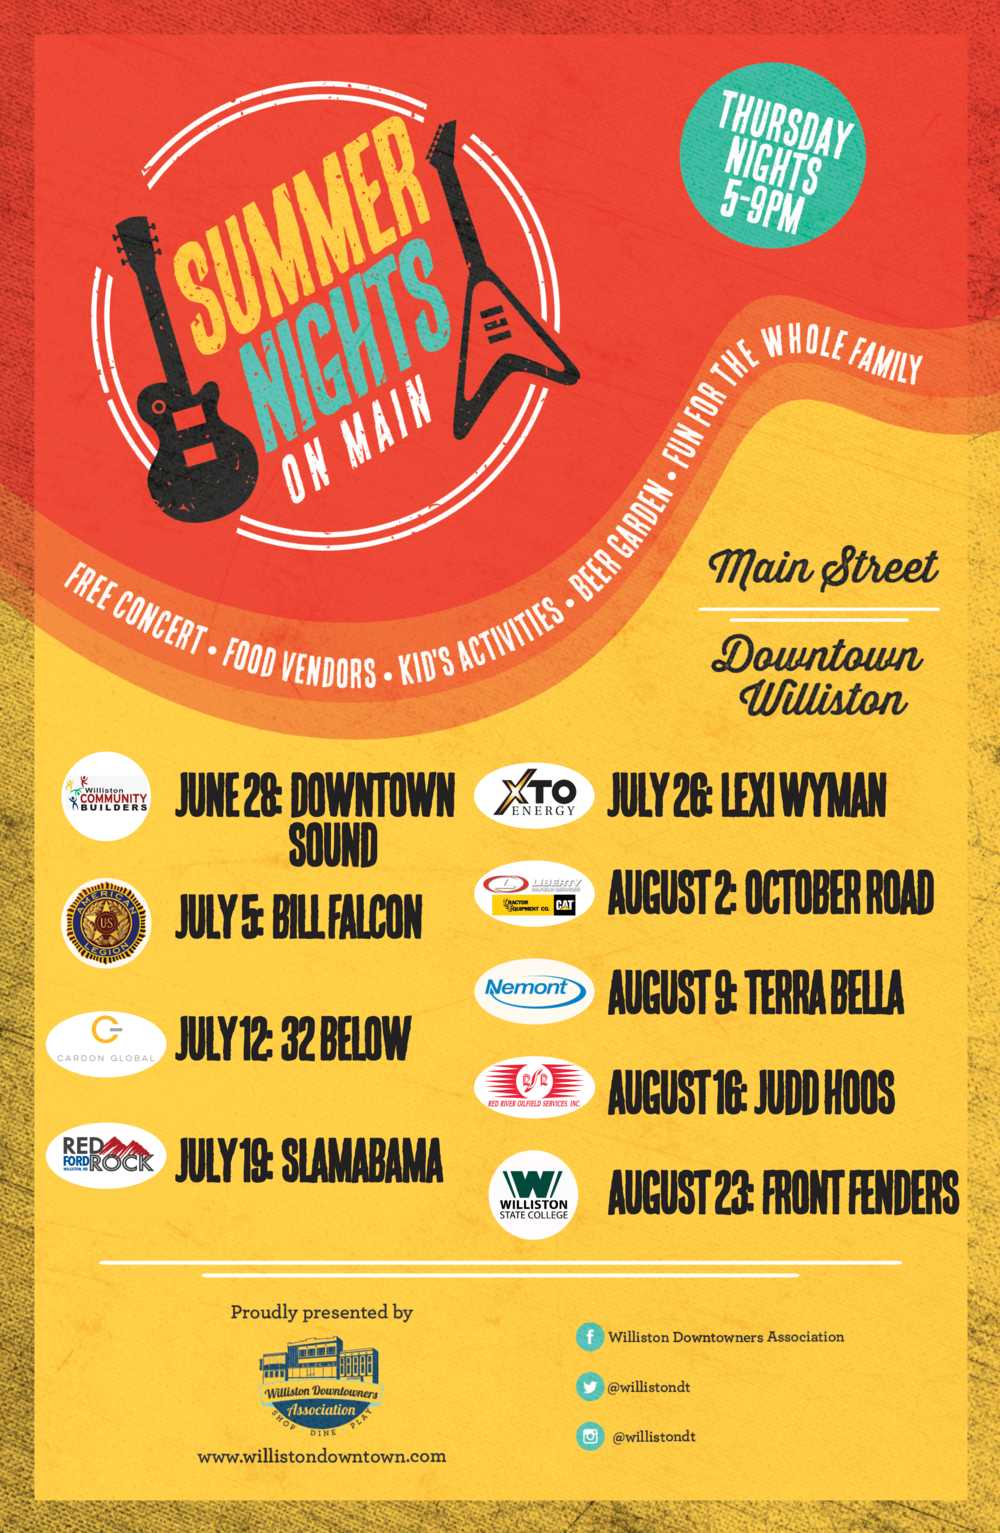 1WDT_SummerNights_Poster11x17 (5).png